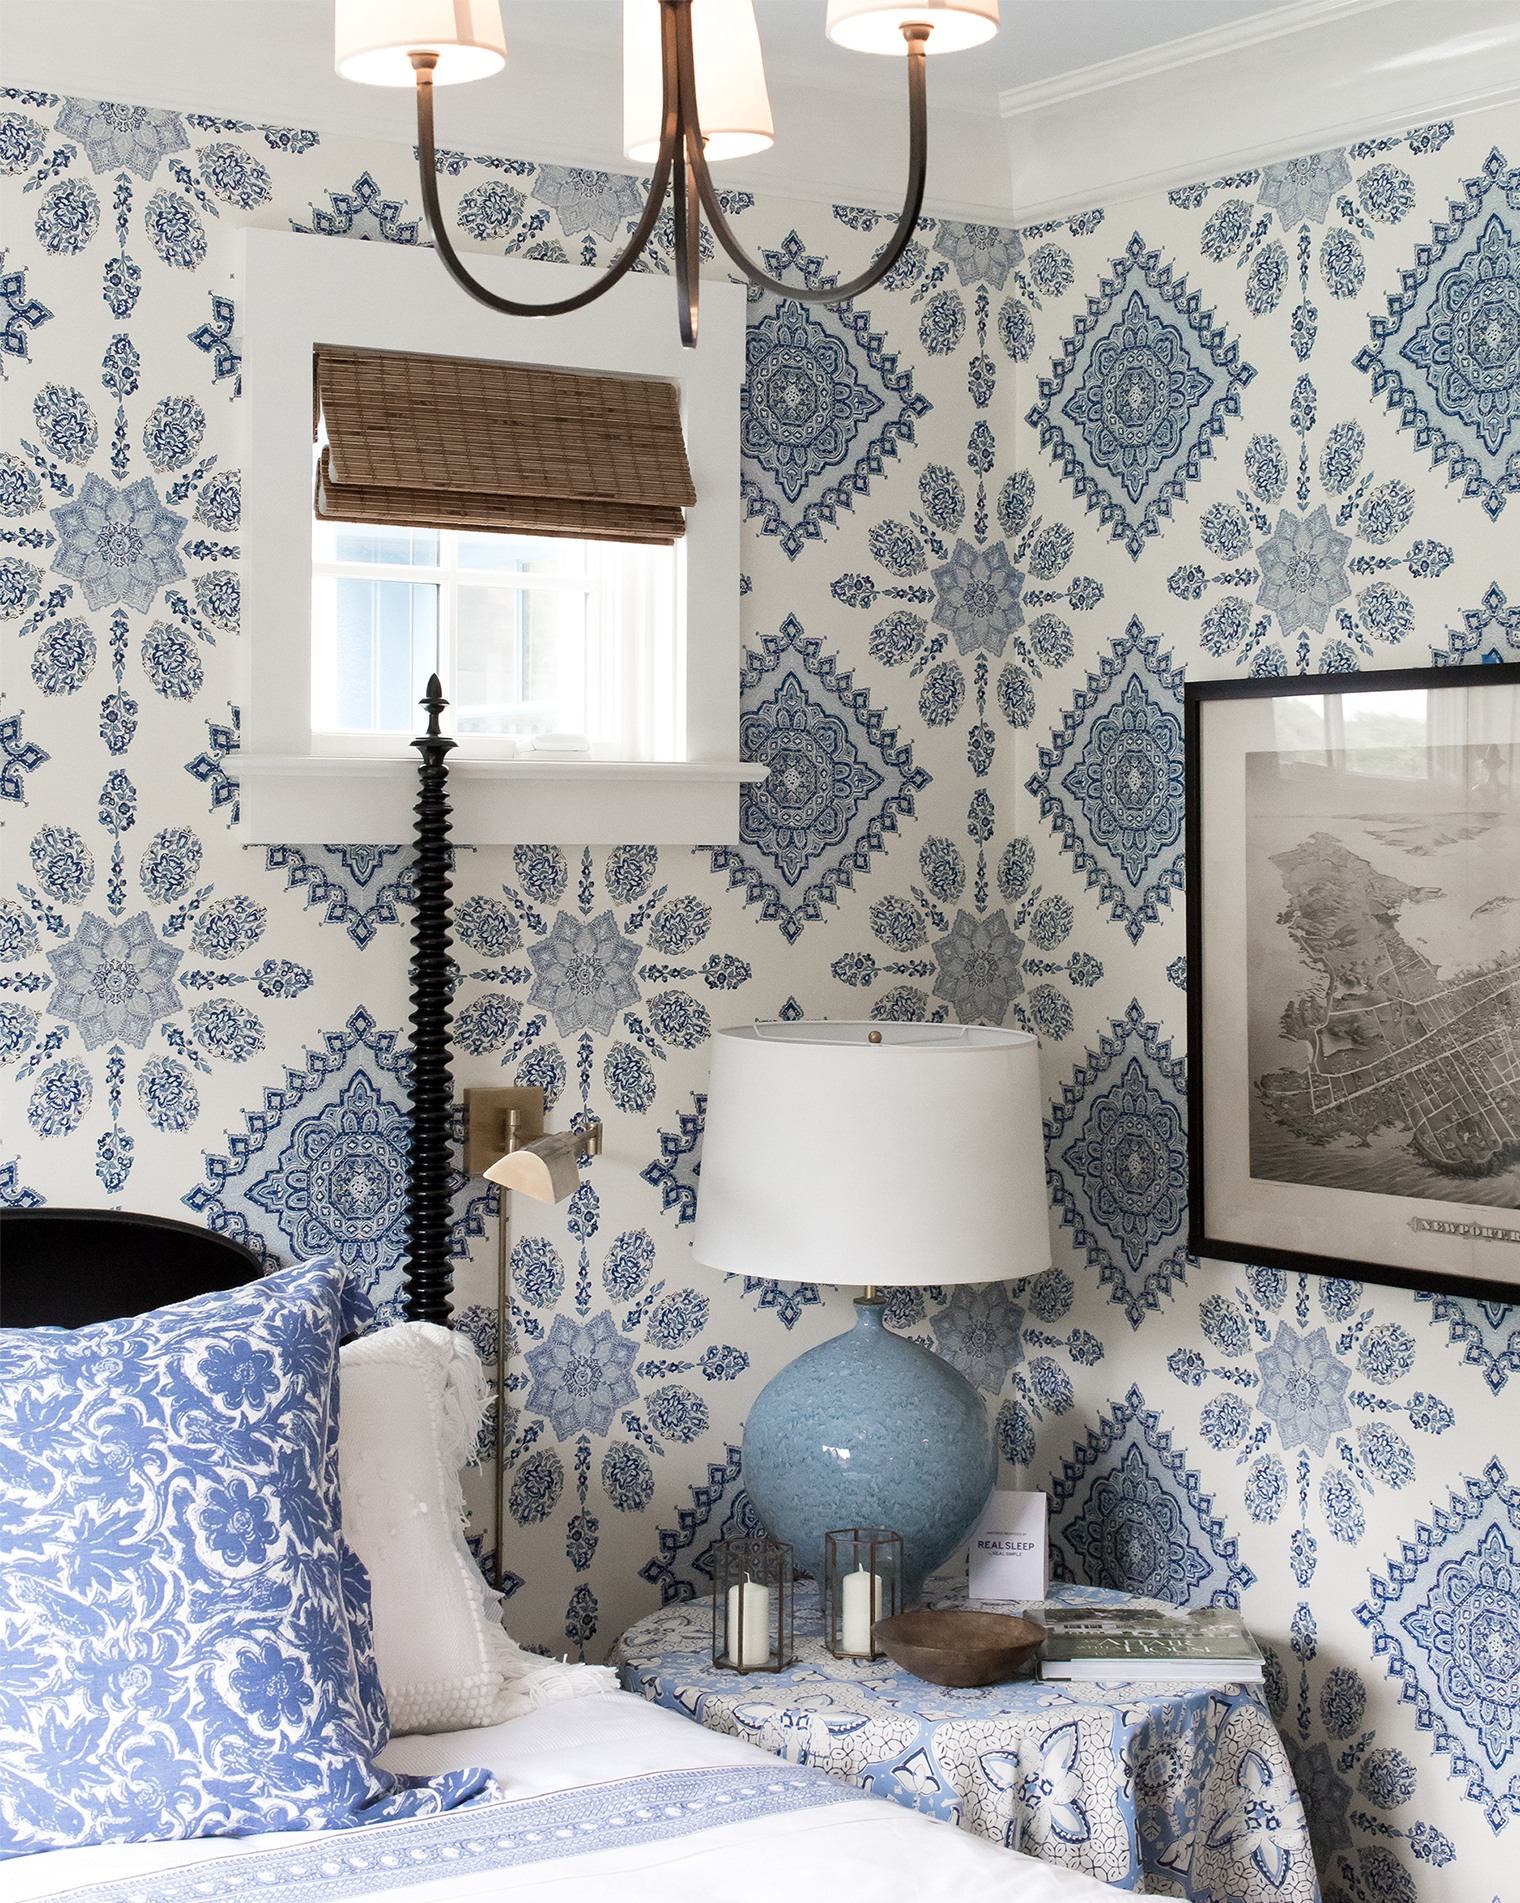 Blue And White Decorating 15 inspirational ideas for decorating with blue and white